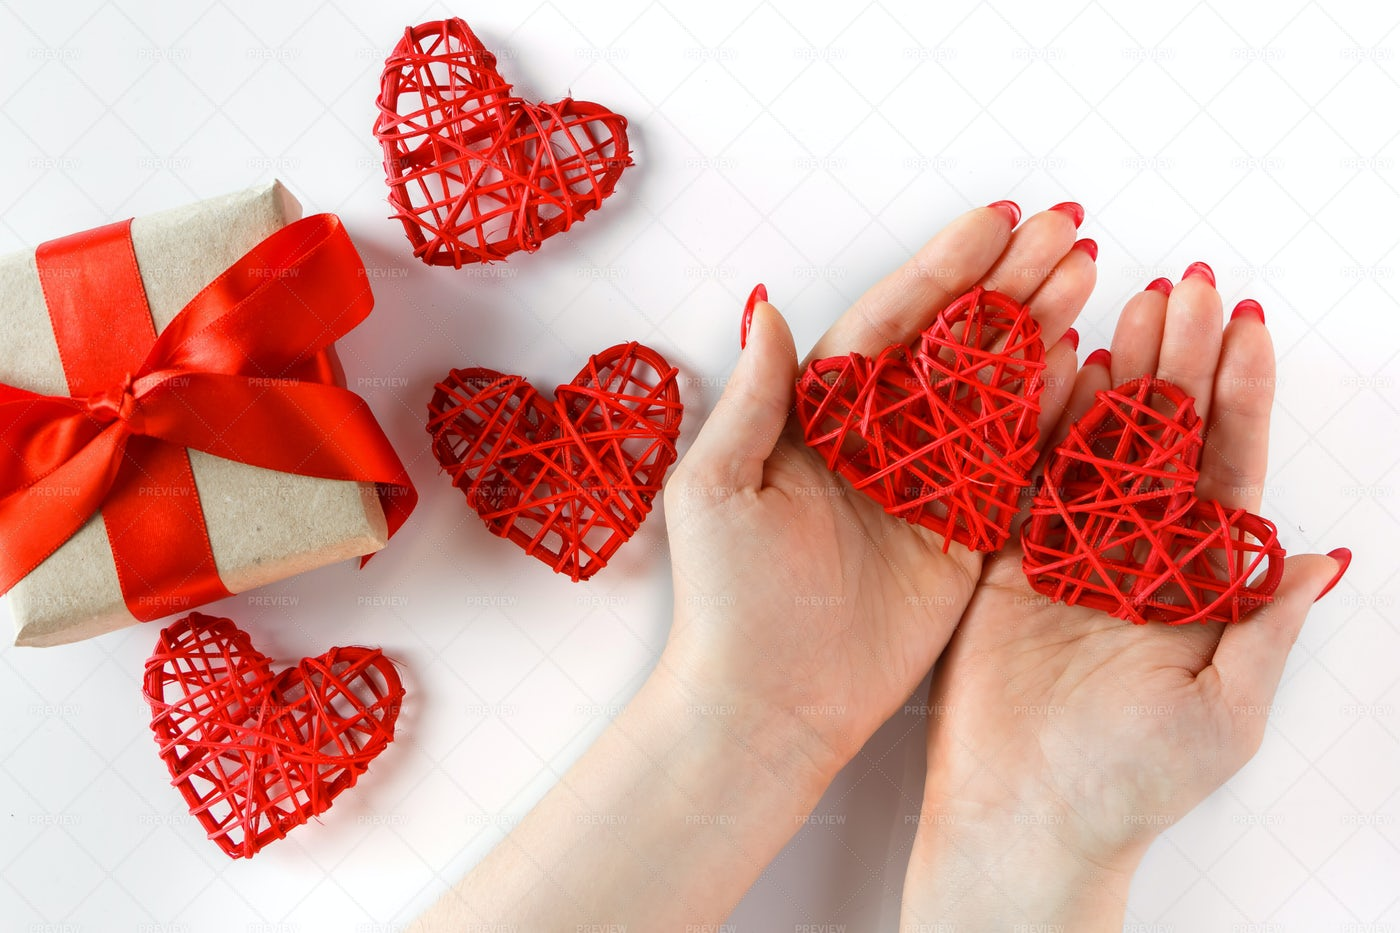 Red Heart In Hands: Stock Photos